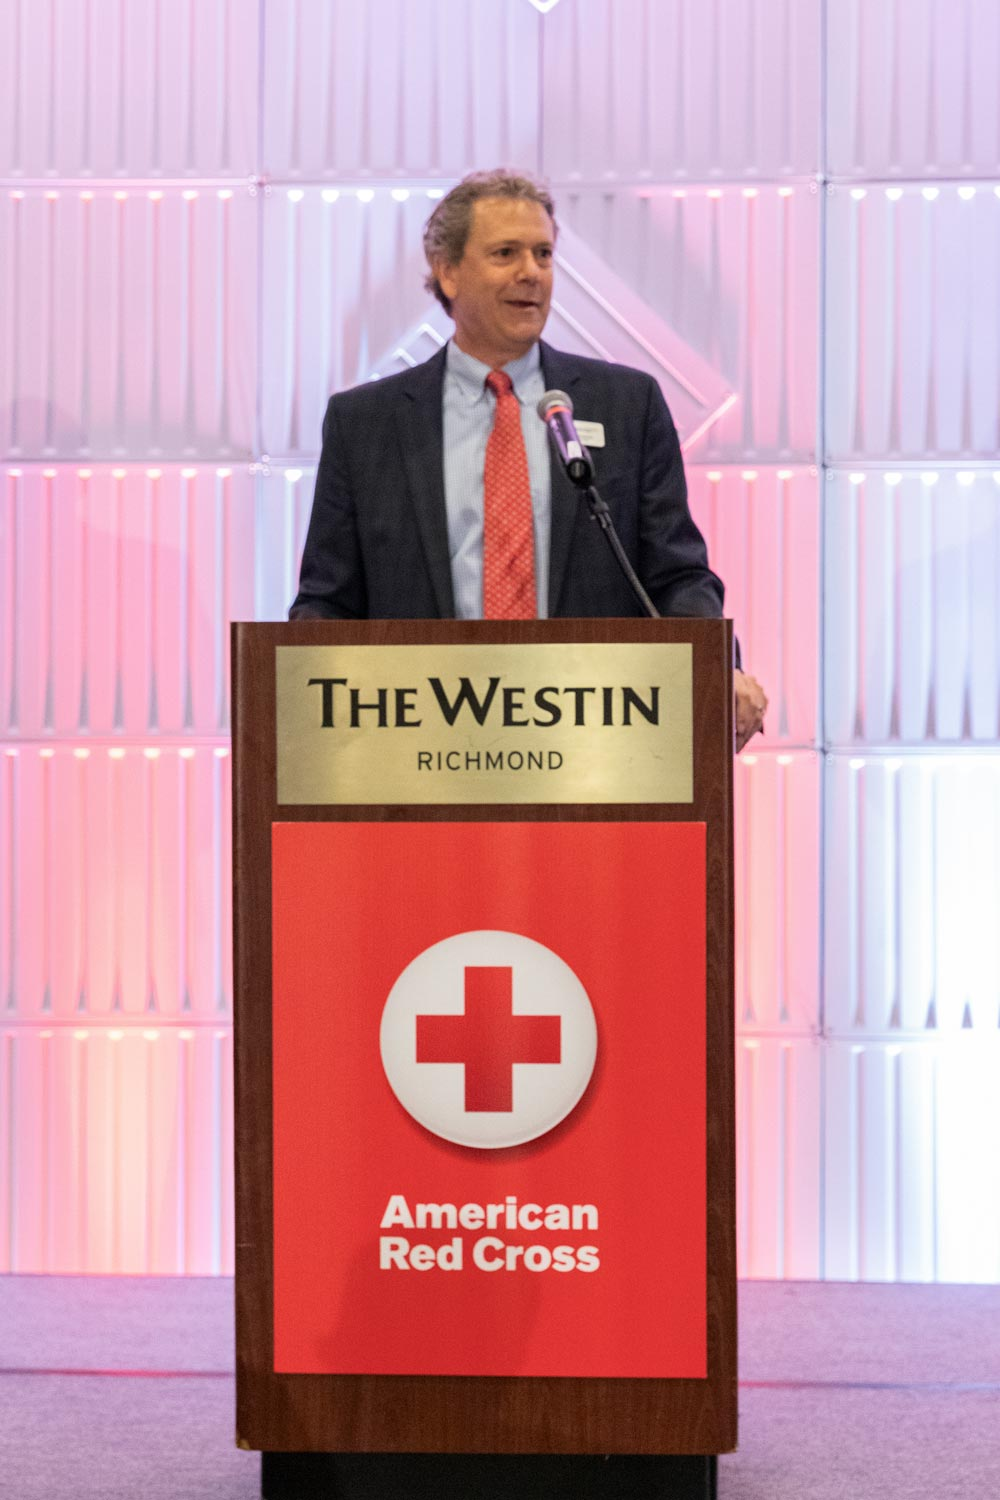 James Hatcher, a UVA alumnus, has worked at American Red Cross since 2016. (Contributed photo)